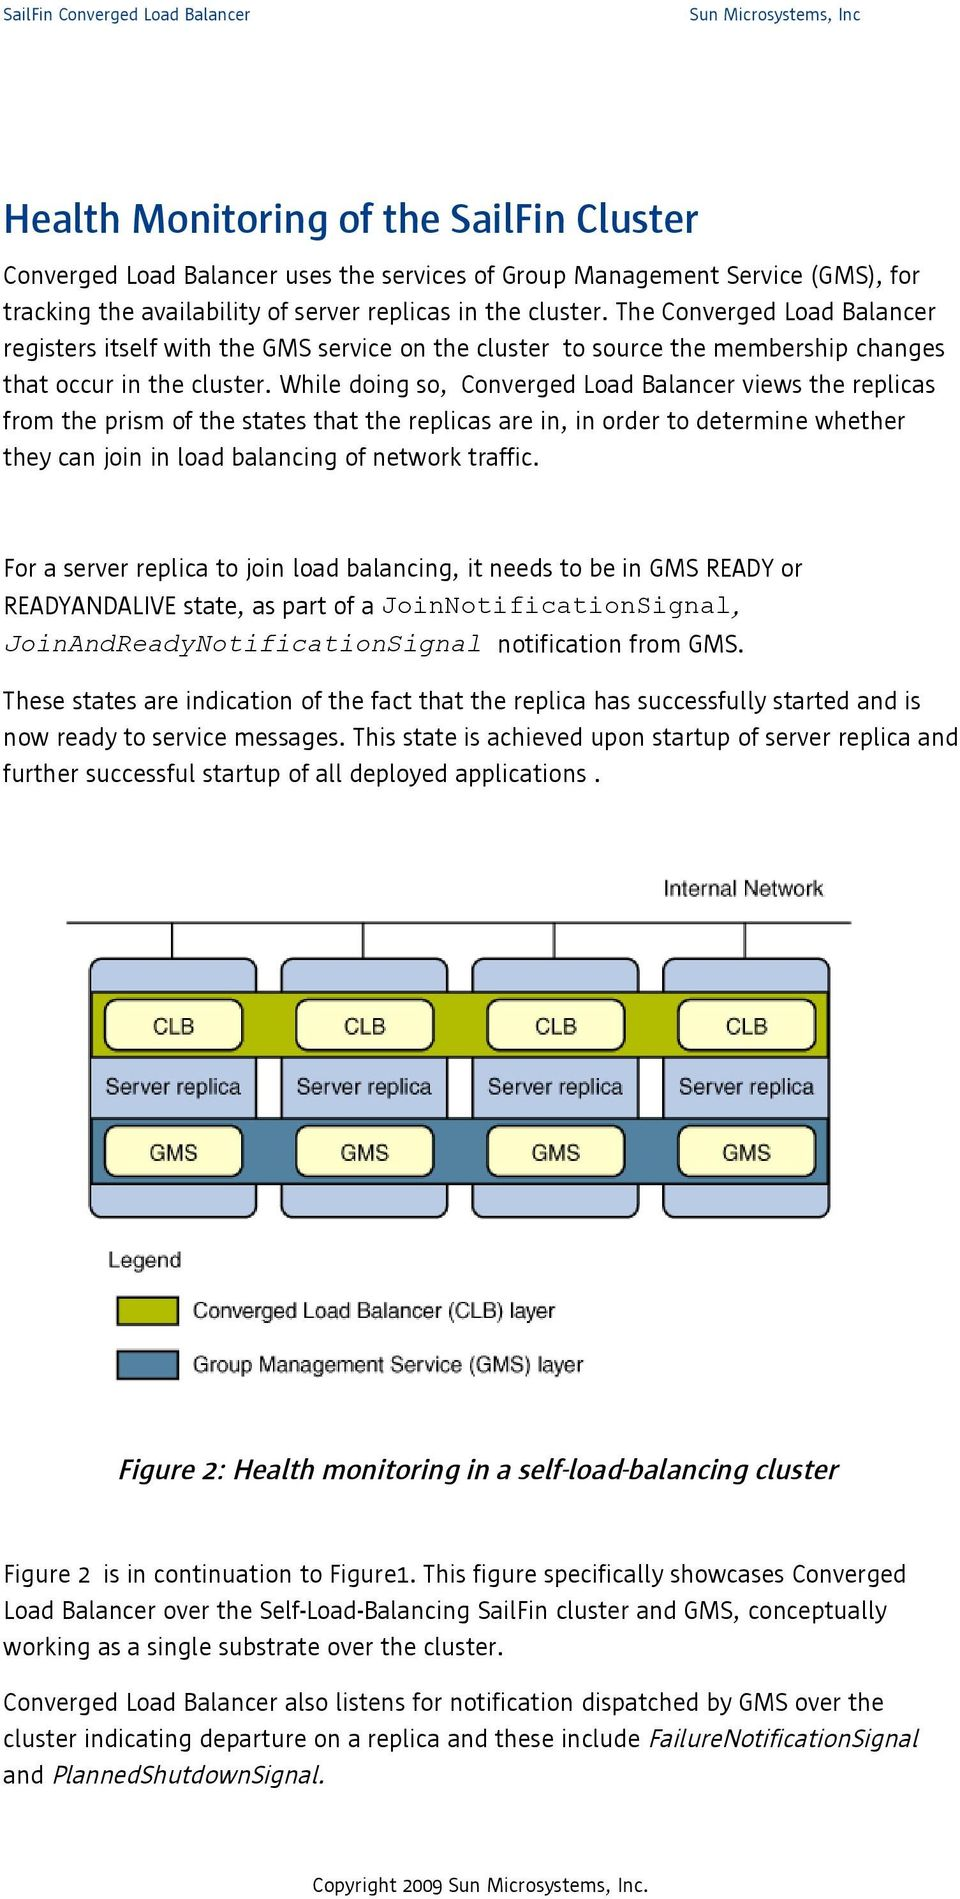 While doing so, Converged Load Balancer views the replicas from the prism of the states that the replicas are in, in order to determine whether they can join in load balancing of network traffic.